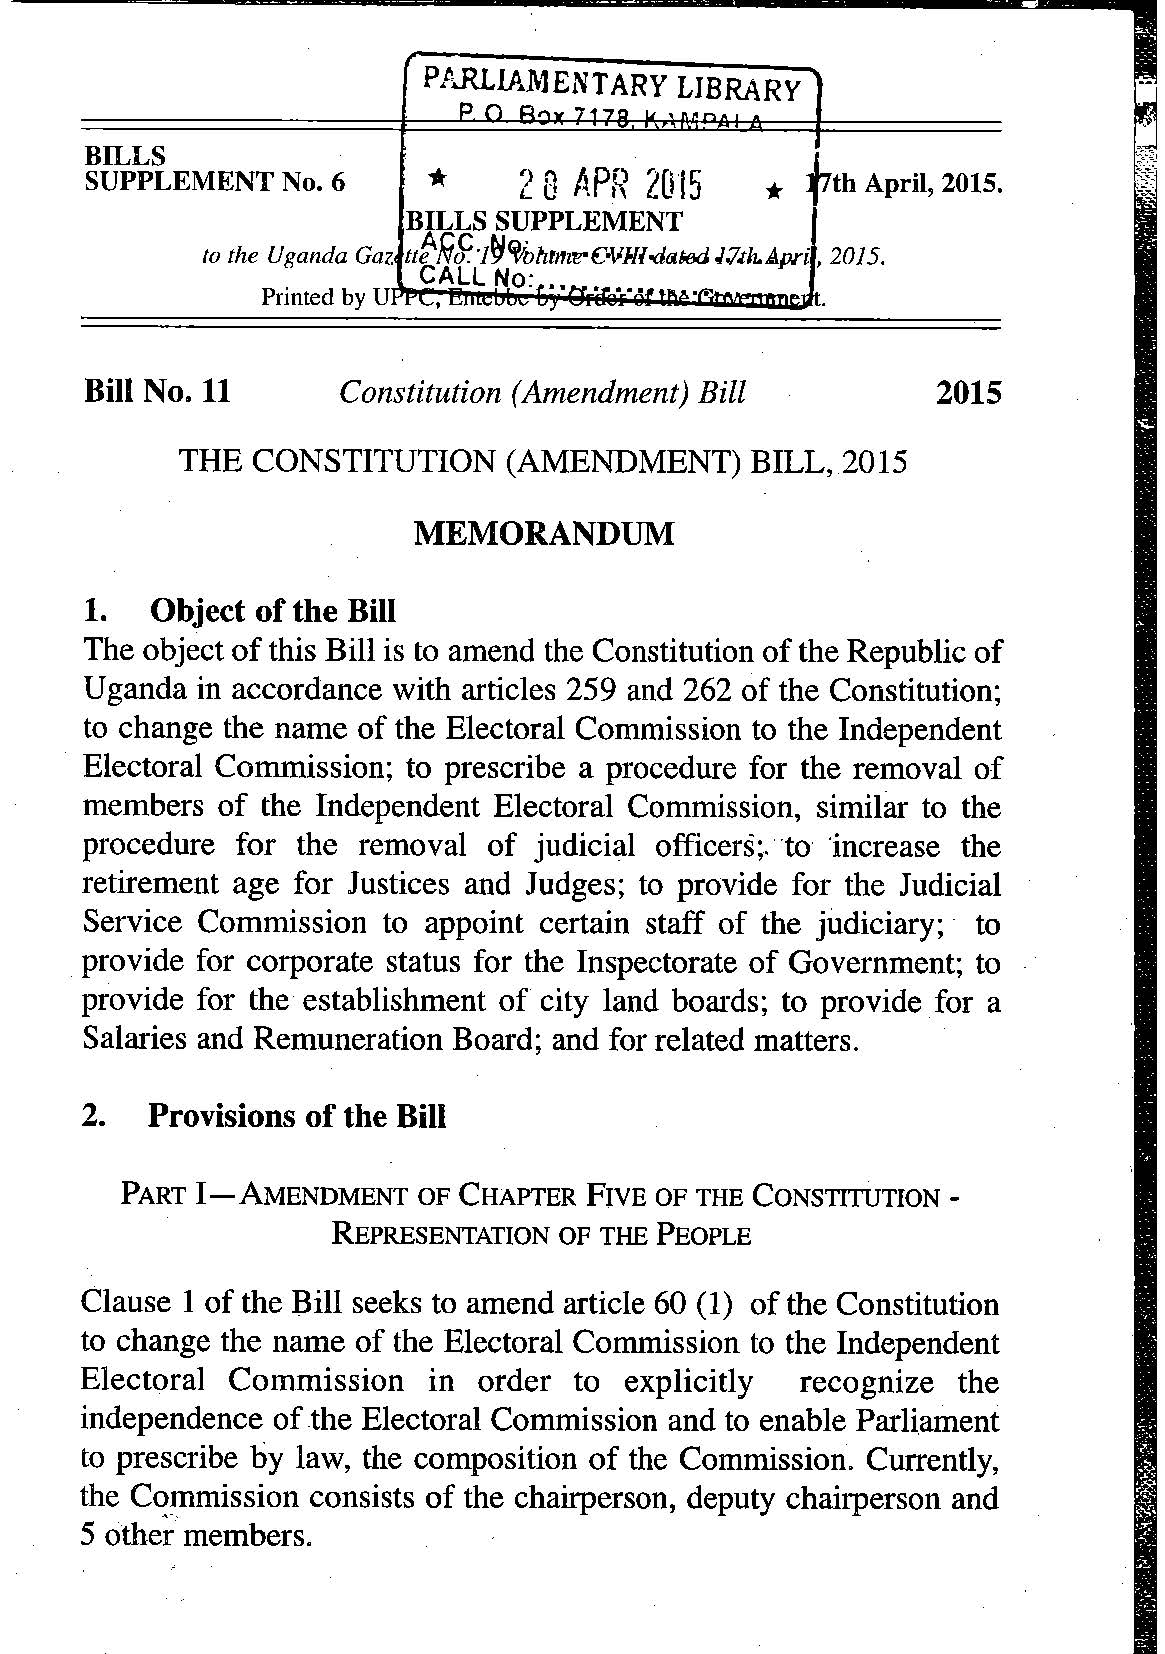 Constitution Amendment bill 2015